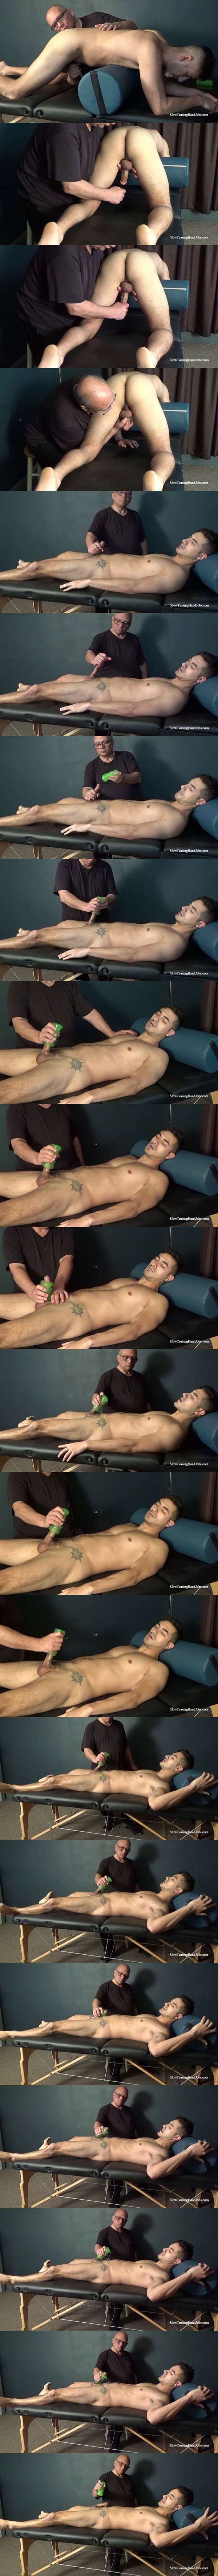 Slowteasinghandjobs - master Rich slowly strokes and edges straight jock Tim's cock with a pocket pussy until he jerks Tim off in Tim's Slow Pocket Pussy Edging 02